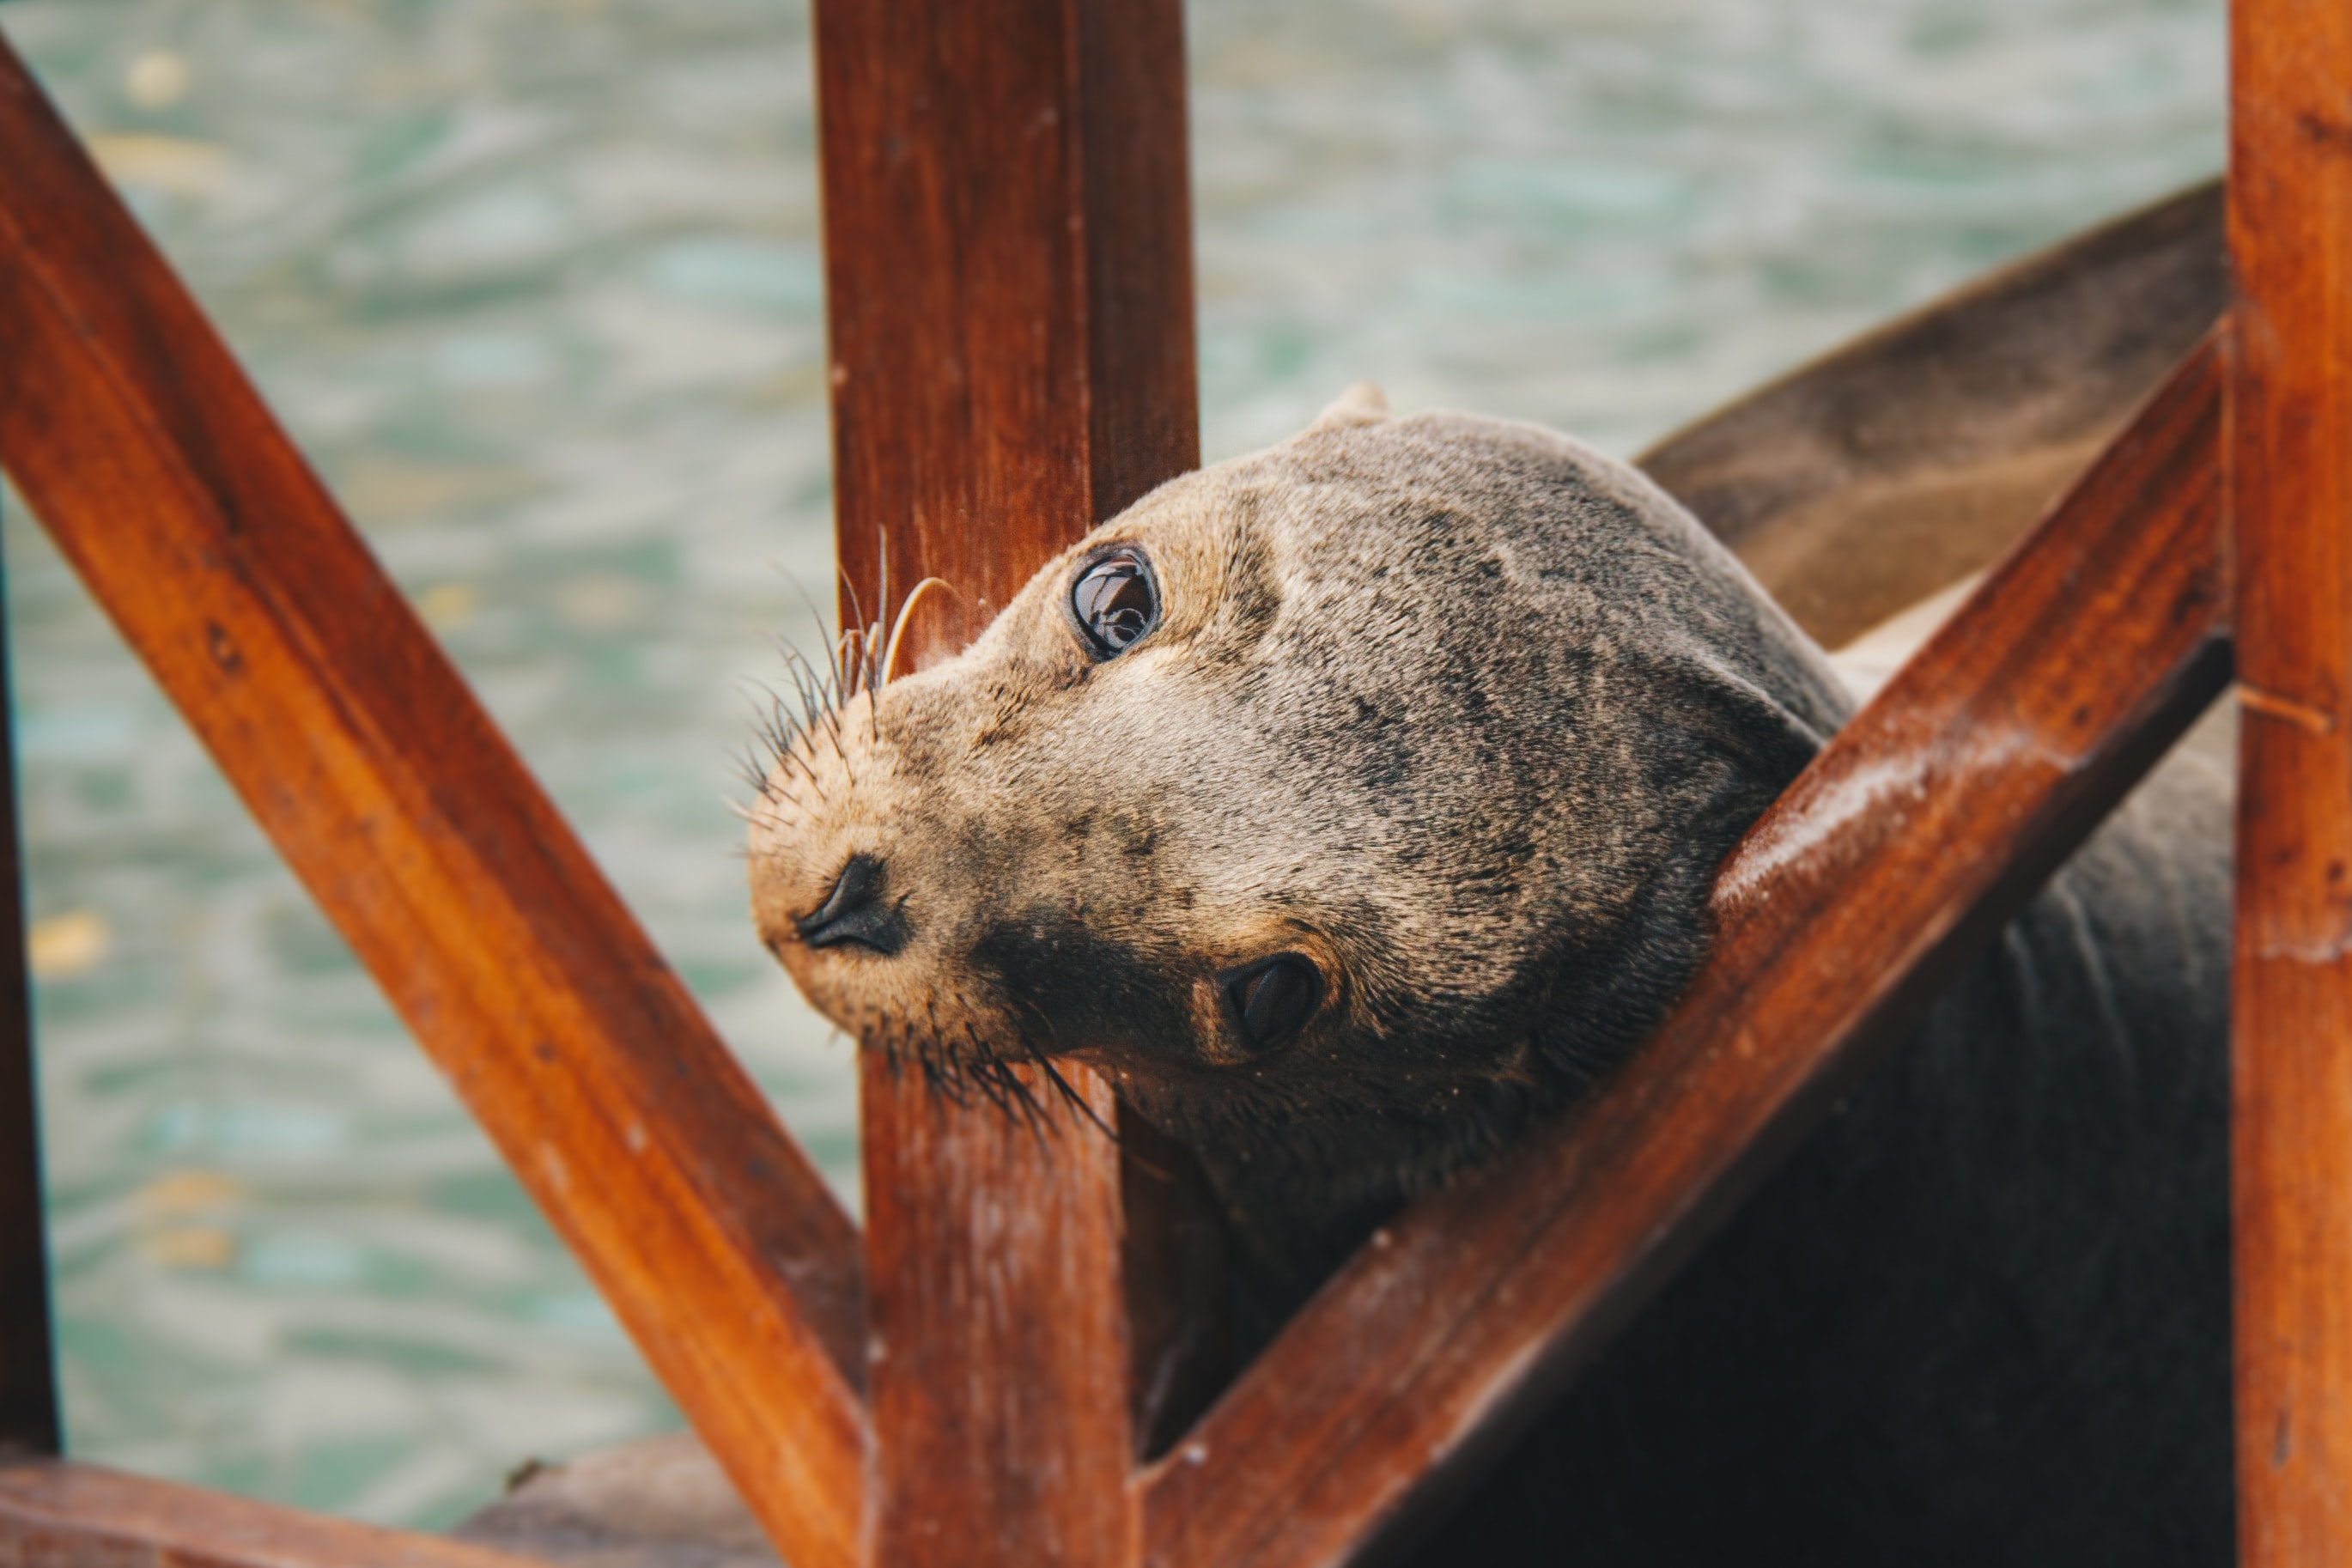 A seal looking at the camera with its head between wooden beams